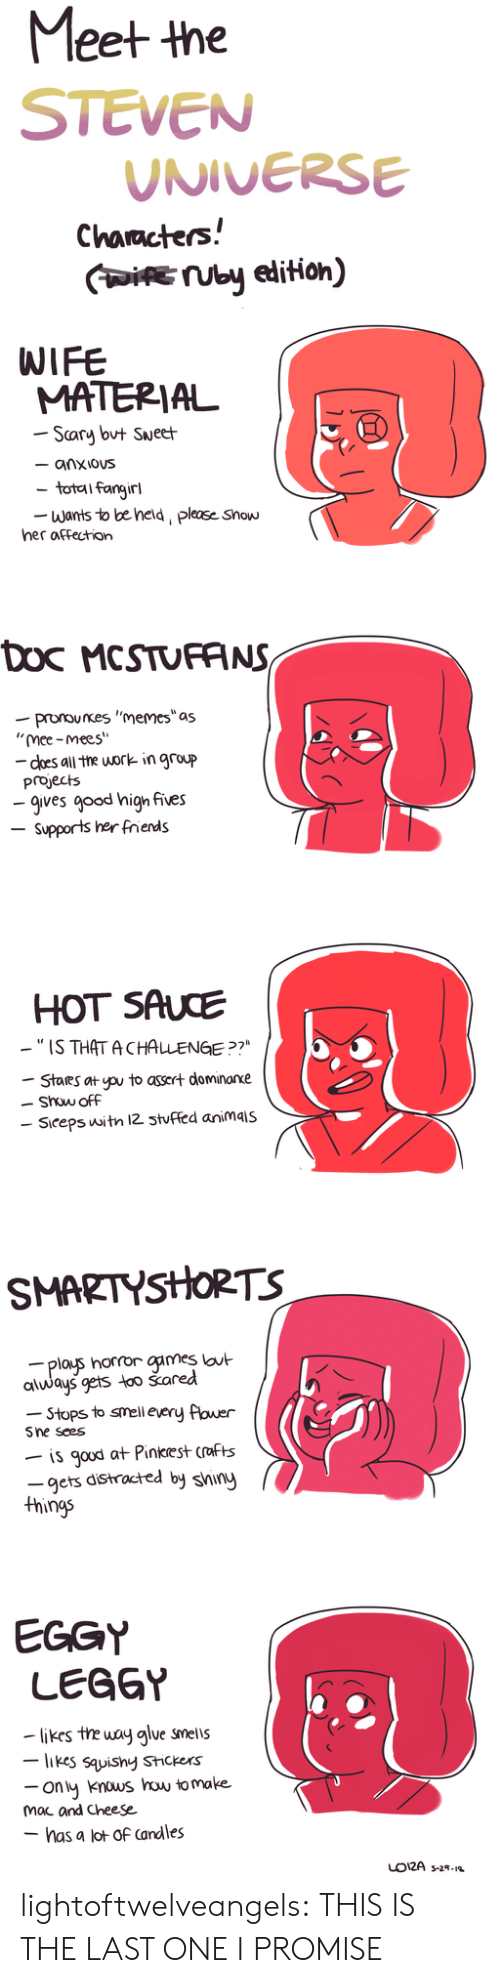 "Hot Sauce: Meet the  STEVEN  UNIVERSE  Characters!  IUby edition)  WIFE  MATERIAL  Scary but Sueet  - anxious  total fangirl  Wants to be held, please Show  her affection  Doc MCSTUFANS  -pronounes ""memes""as  ""mee-mees""  - does all the work in group  projects  -gives good high fives  Supports her frends  HOT SAUCE  -""IS THAT ACHALENGE ?7  Stares at pu to assert dominarxe  Show off  Siceps witn 12 3tuffed animais  SMARTYSHORTS  plays horror games lout  always gets too šared  -Stops to smell every flower  Sne sees  is gaud at Pinkrest crafts  -gets distracted by shiny  things  EGGY  LEGGY  likes the way alue smells  -likes sauishy Stickers  ony knous how to make  mac and Cheese  - has a lot of Candles  LO12A s-2- lightoftwelveangels:  THIS IS THE LAST ONE I PROMISE"